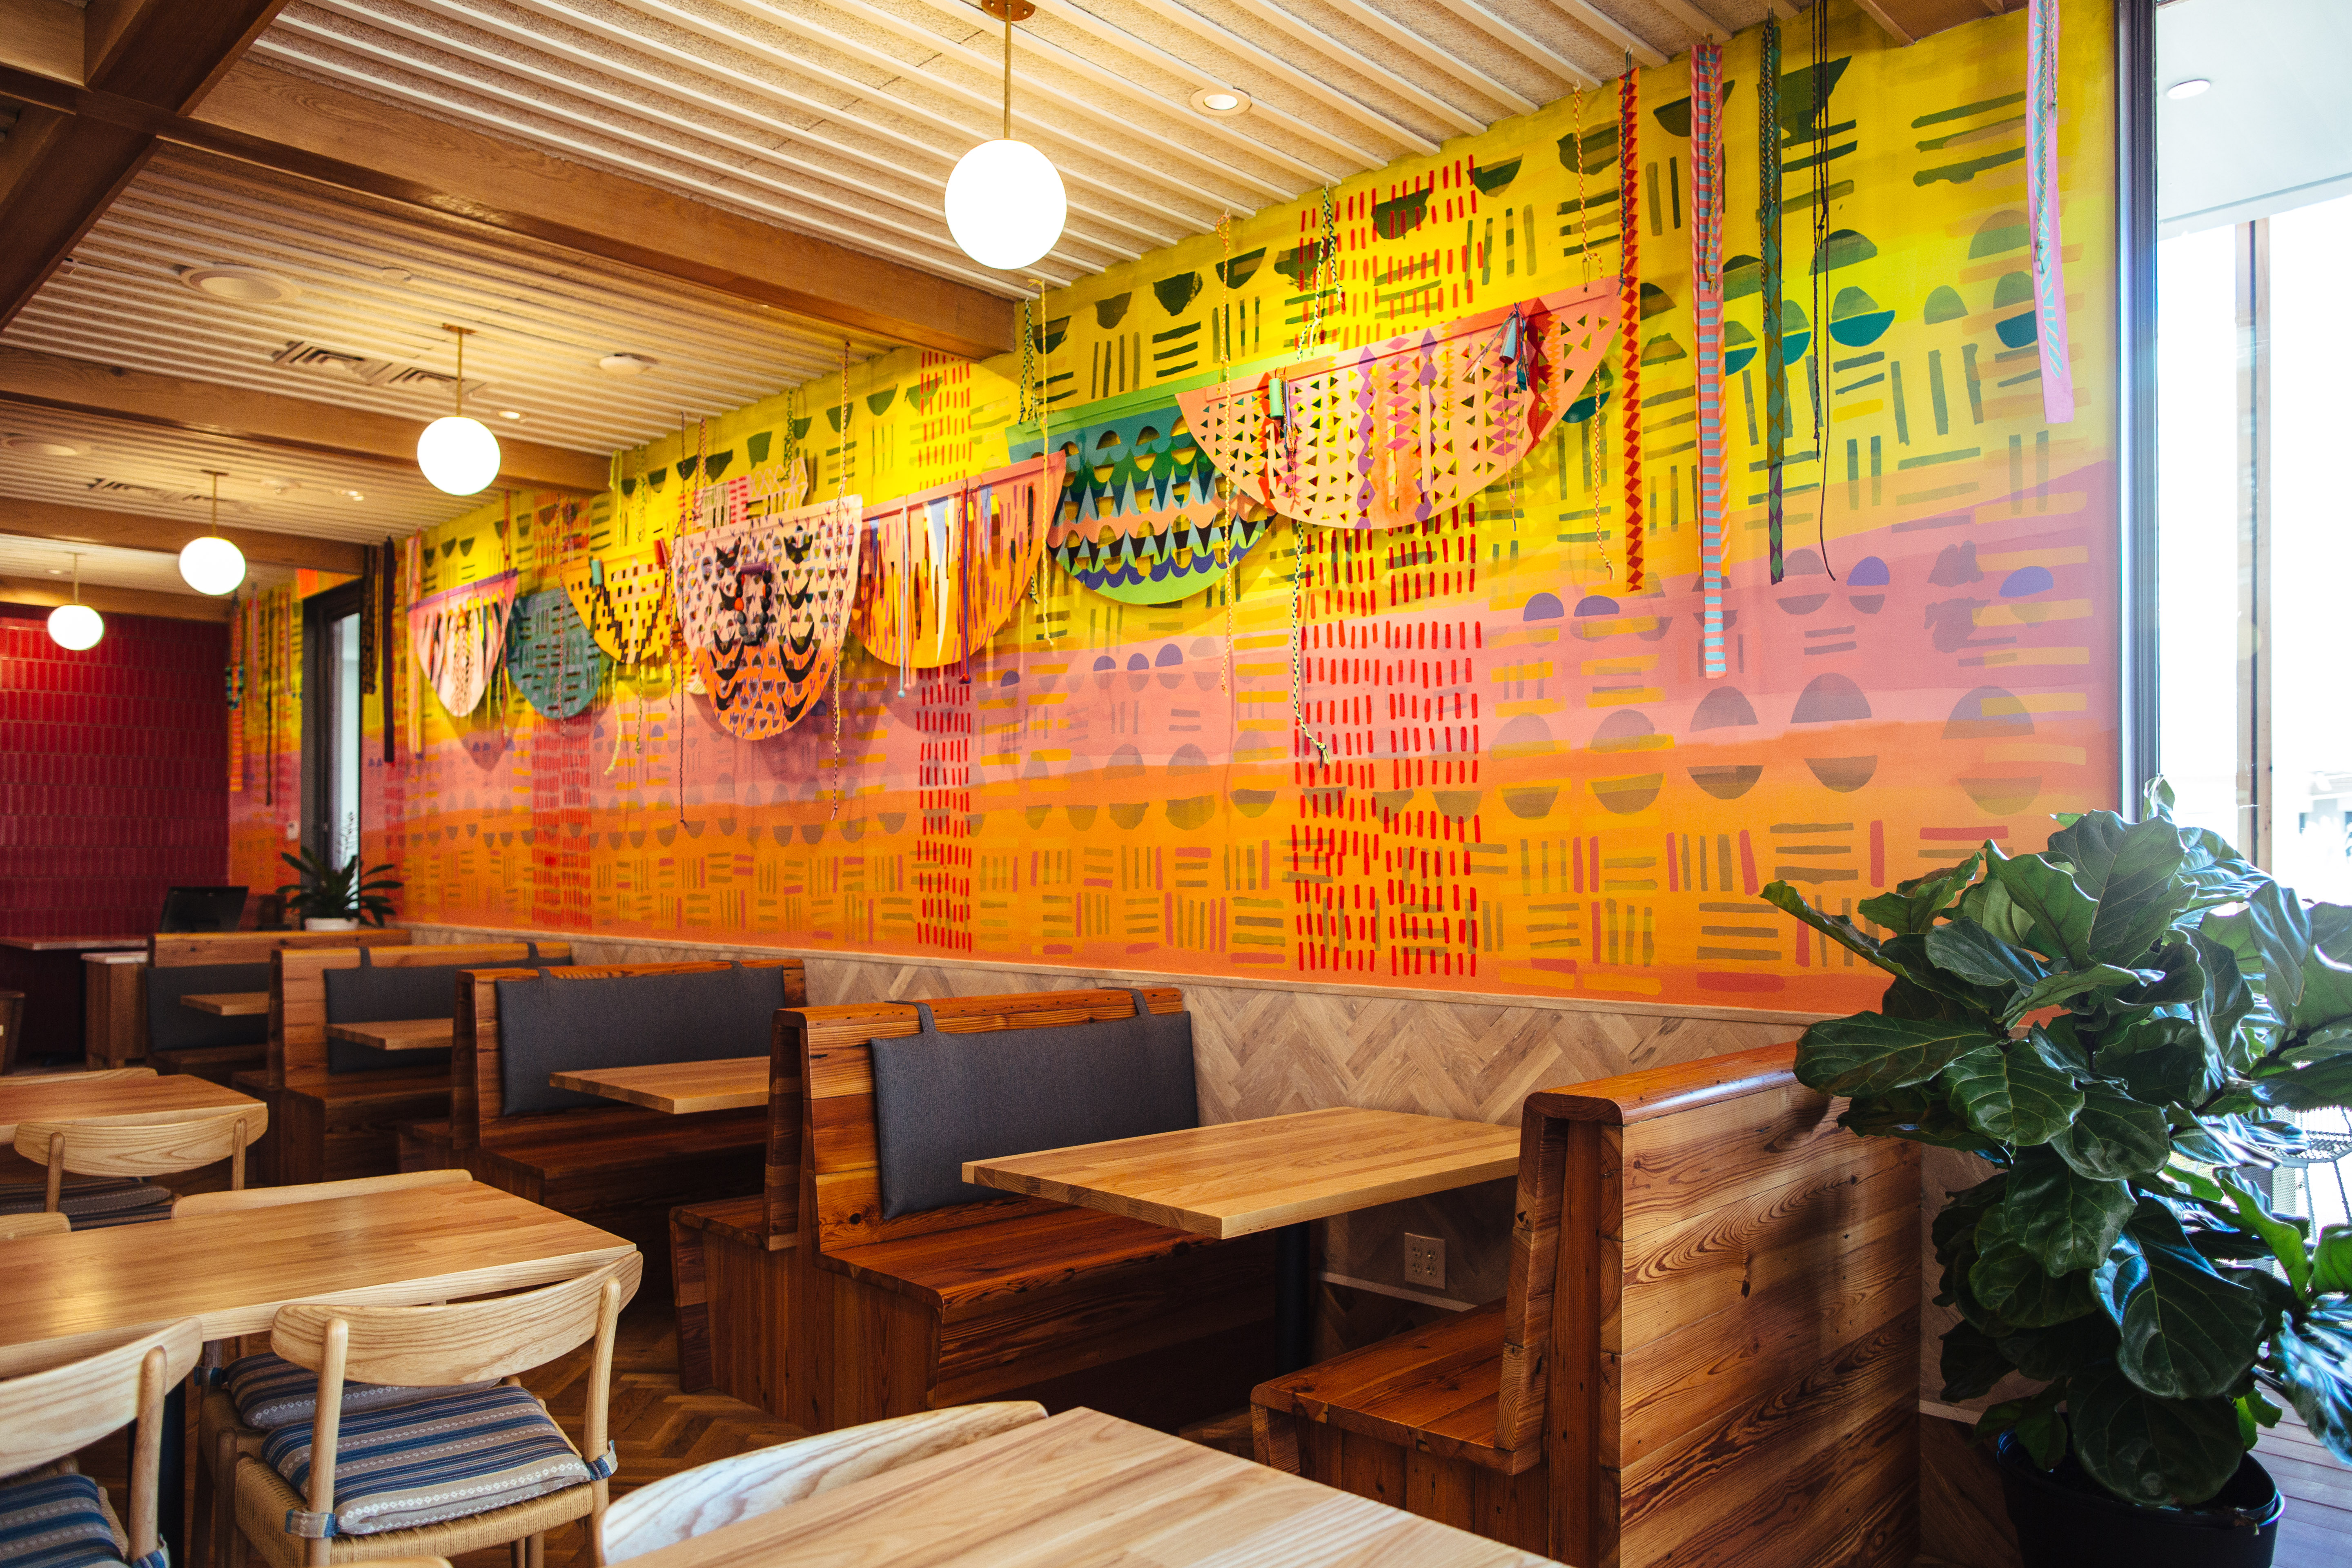 Your new favorite spot for late-night snacks is Top Knot.